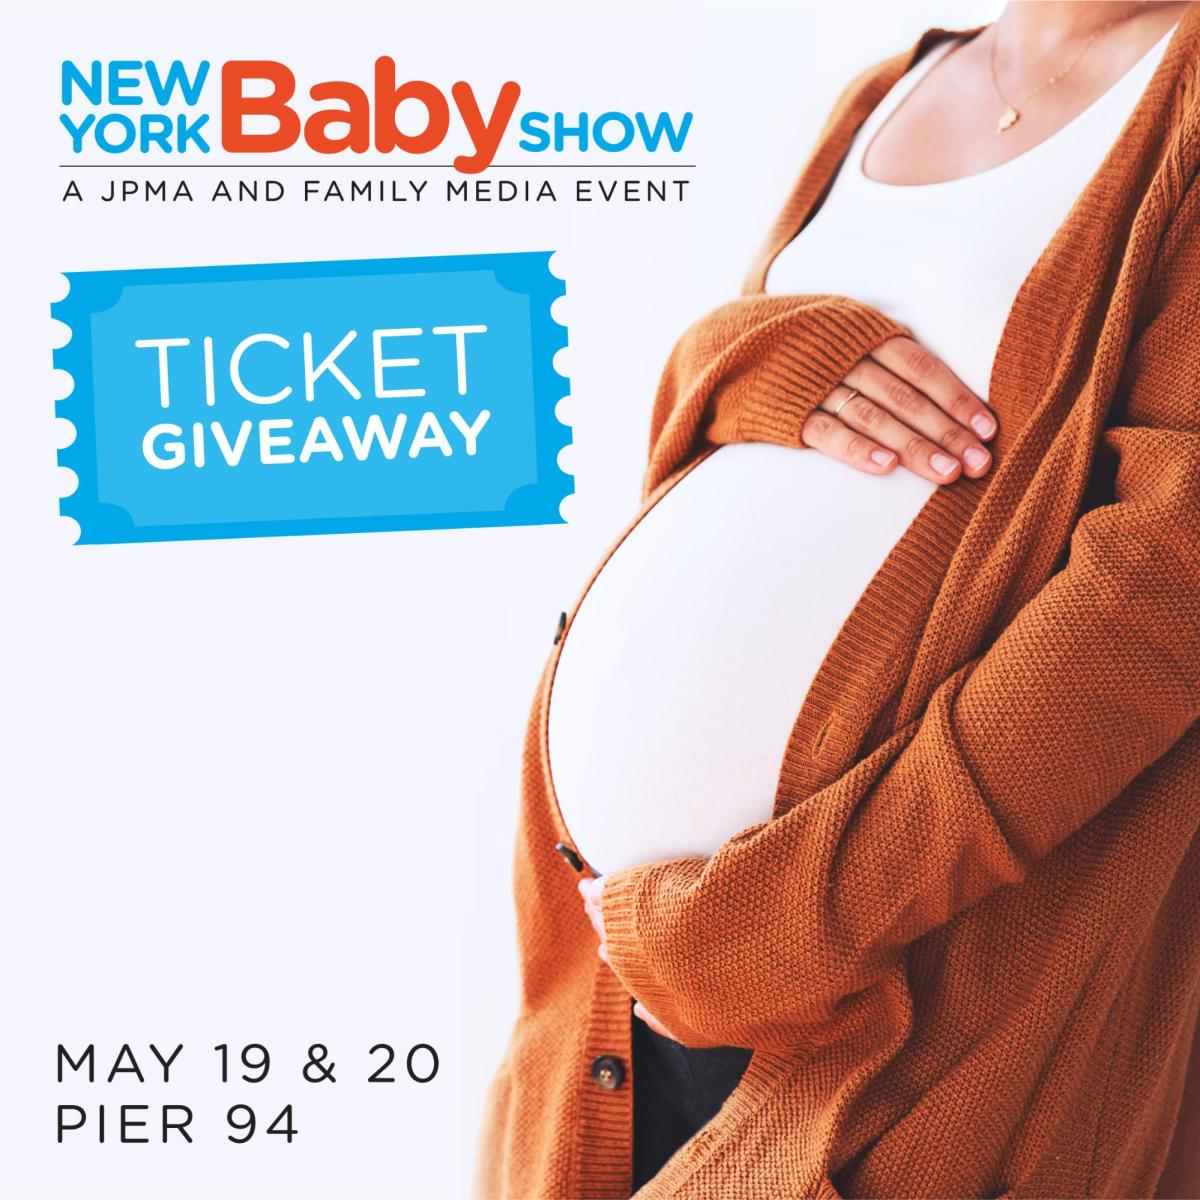 Check Out All Things Baby at the New York Baby Show!